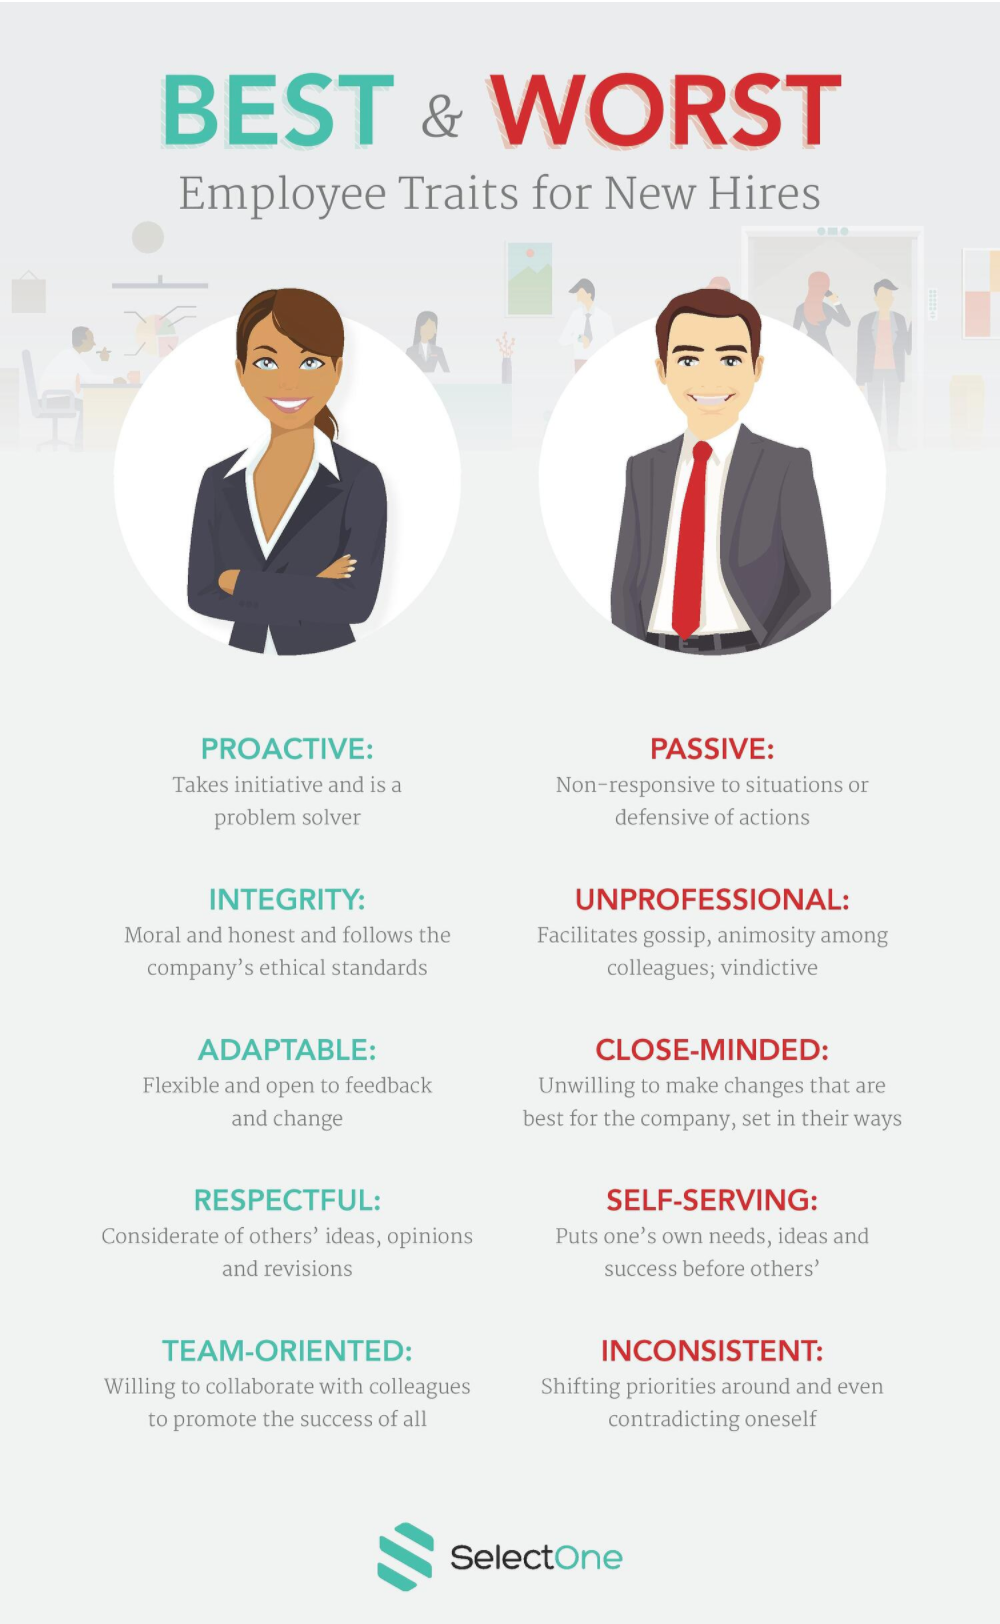 Best and worst employee traits